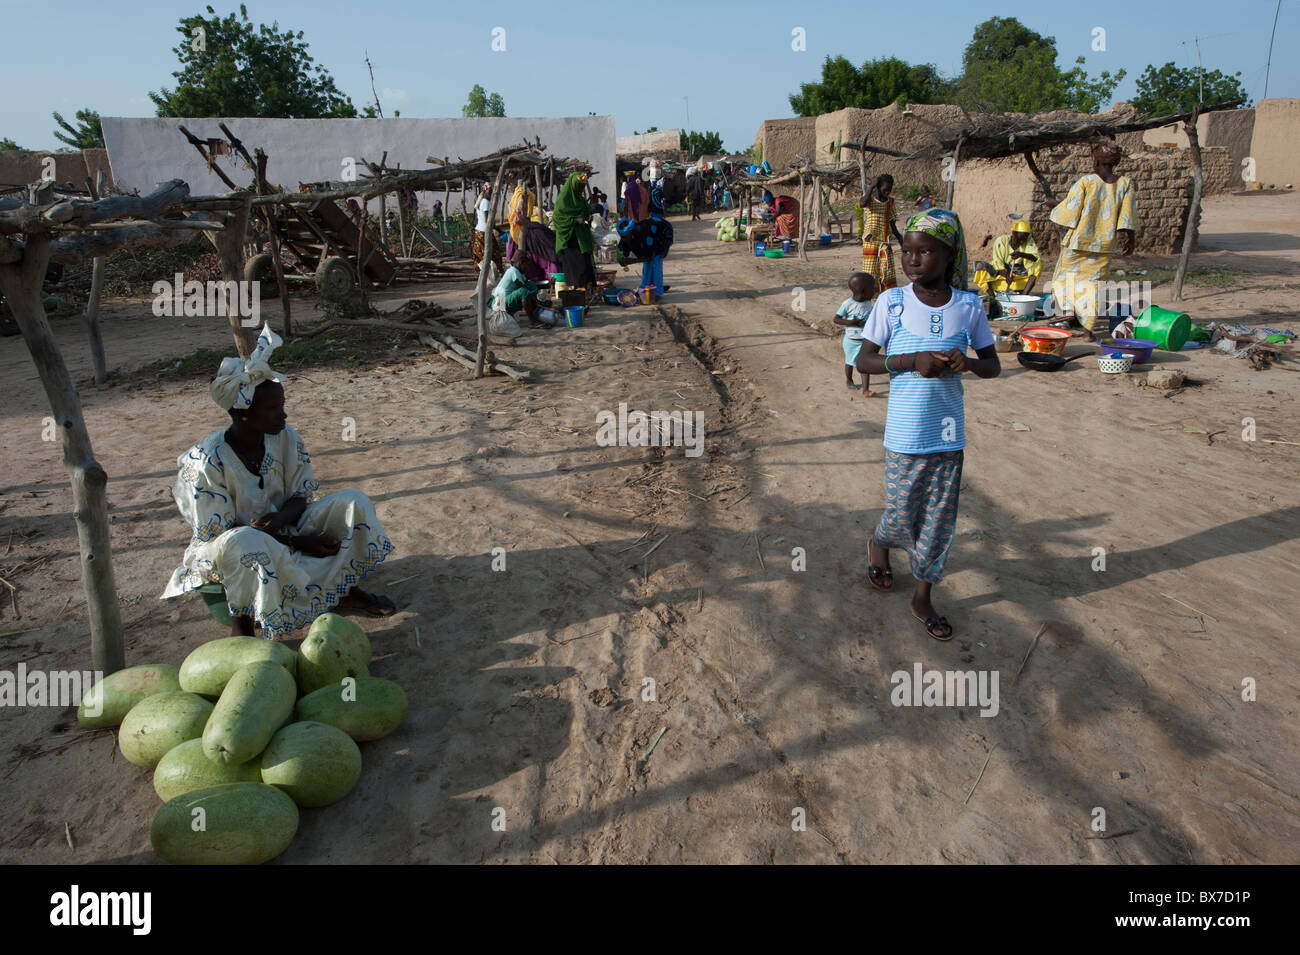 Village life and small market stalls in a village in Mali